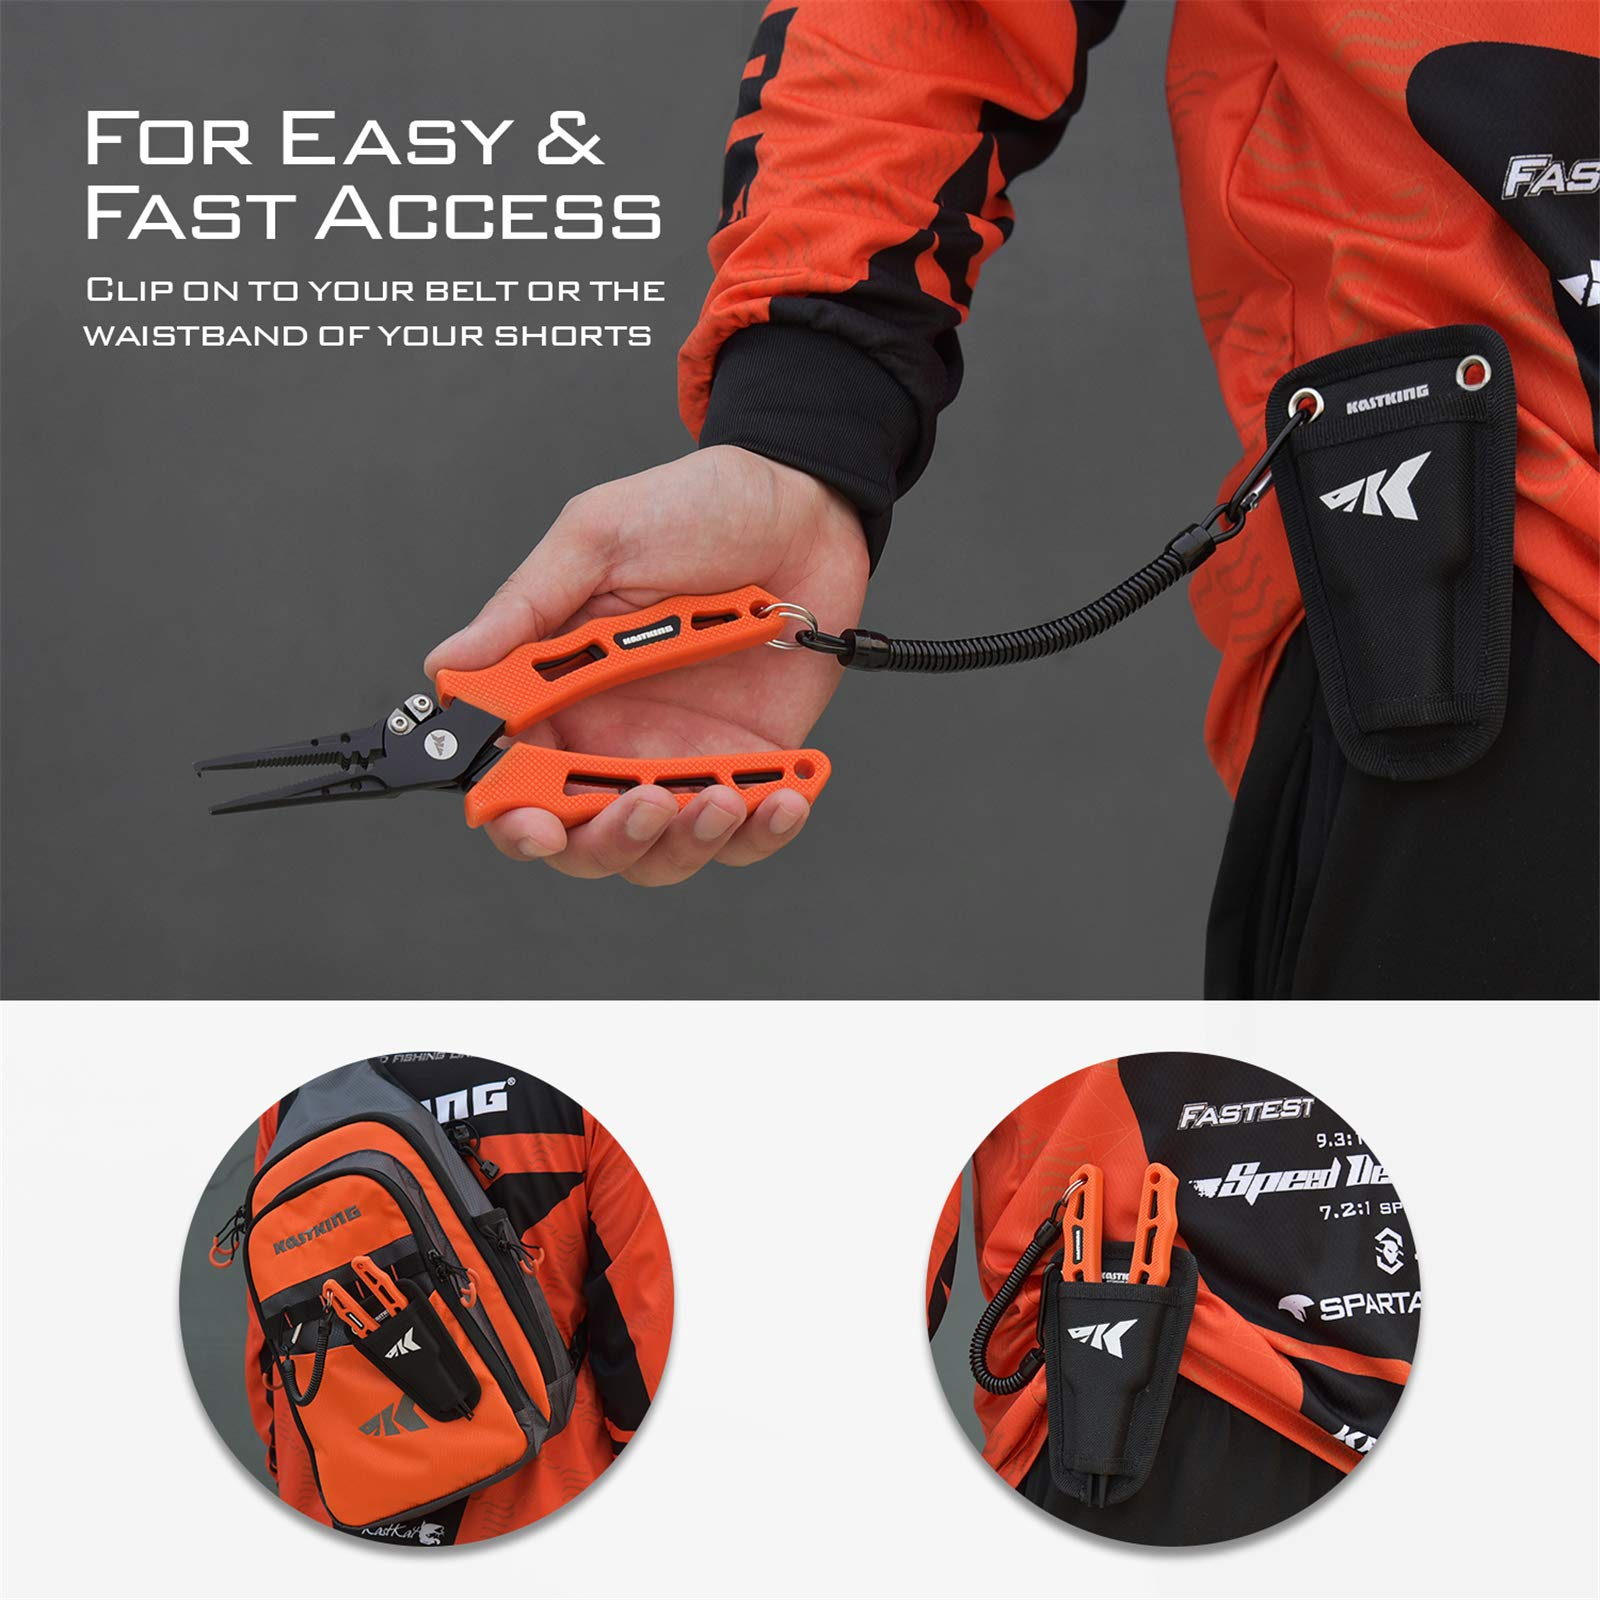 KastKing Cutthroat 7 inch Fishing Pliers, 420 Stainless Steel Fishing Tools, Saltwater Resistant Fishing Gear, Tungsten Carbide Cutters, Corrosion Resistant Teflon Coating, Rubber Handle